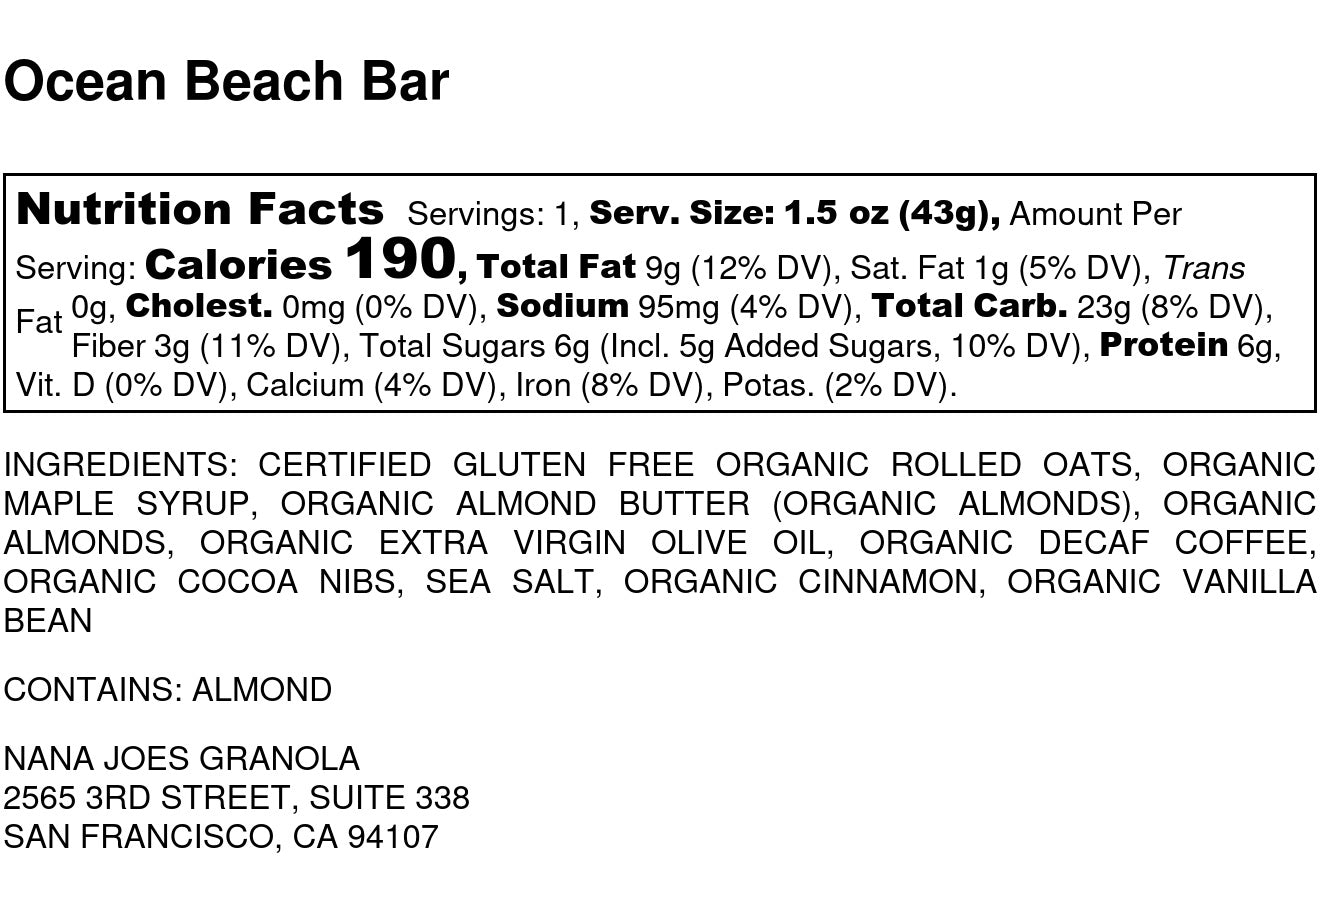 nutrition facts image